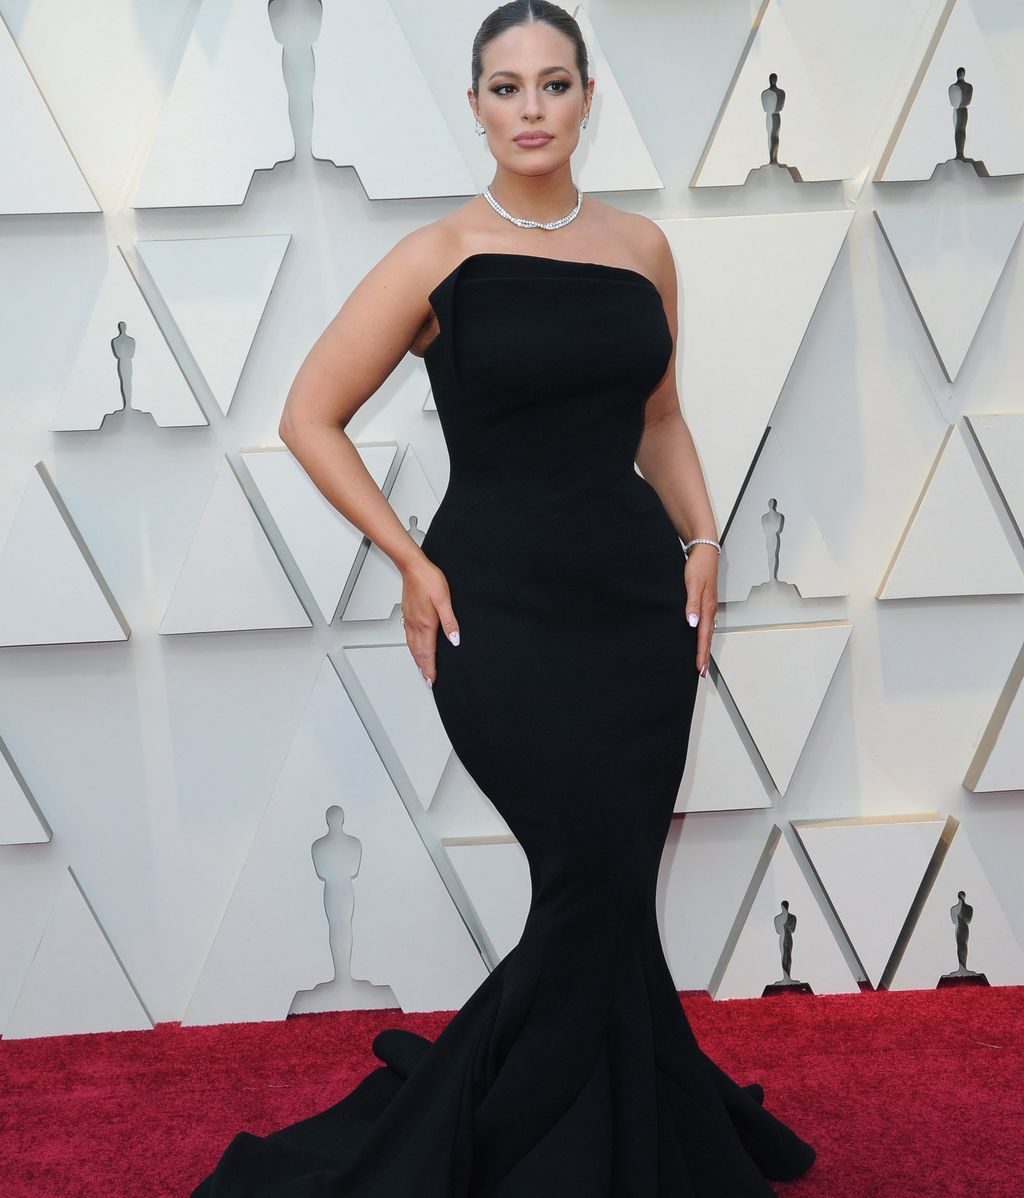 Ashley Graham con vestido de corte sirena firmado por Zac Posen